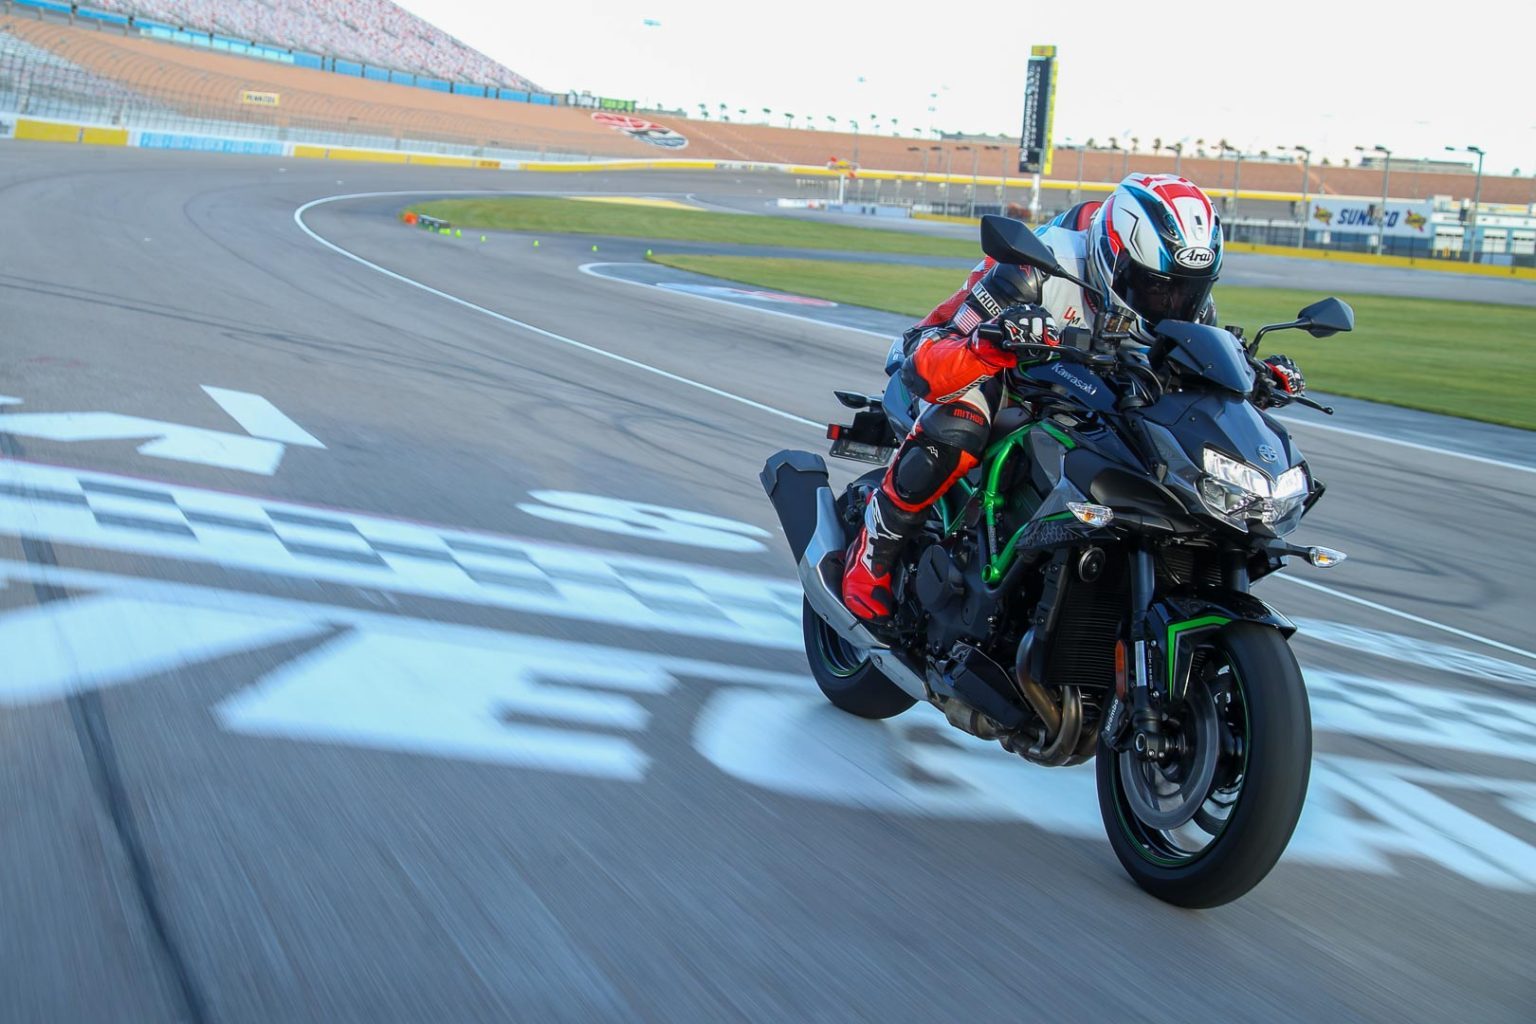 2020 Kawasaki Z H2 Review: Street and Track (17 Fast Facts)